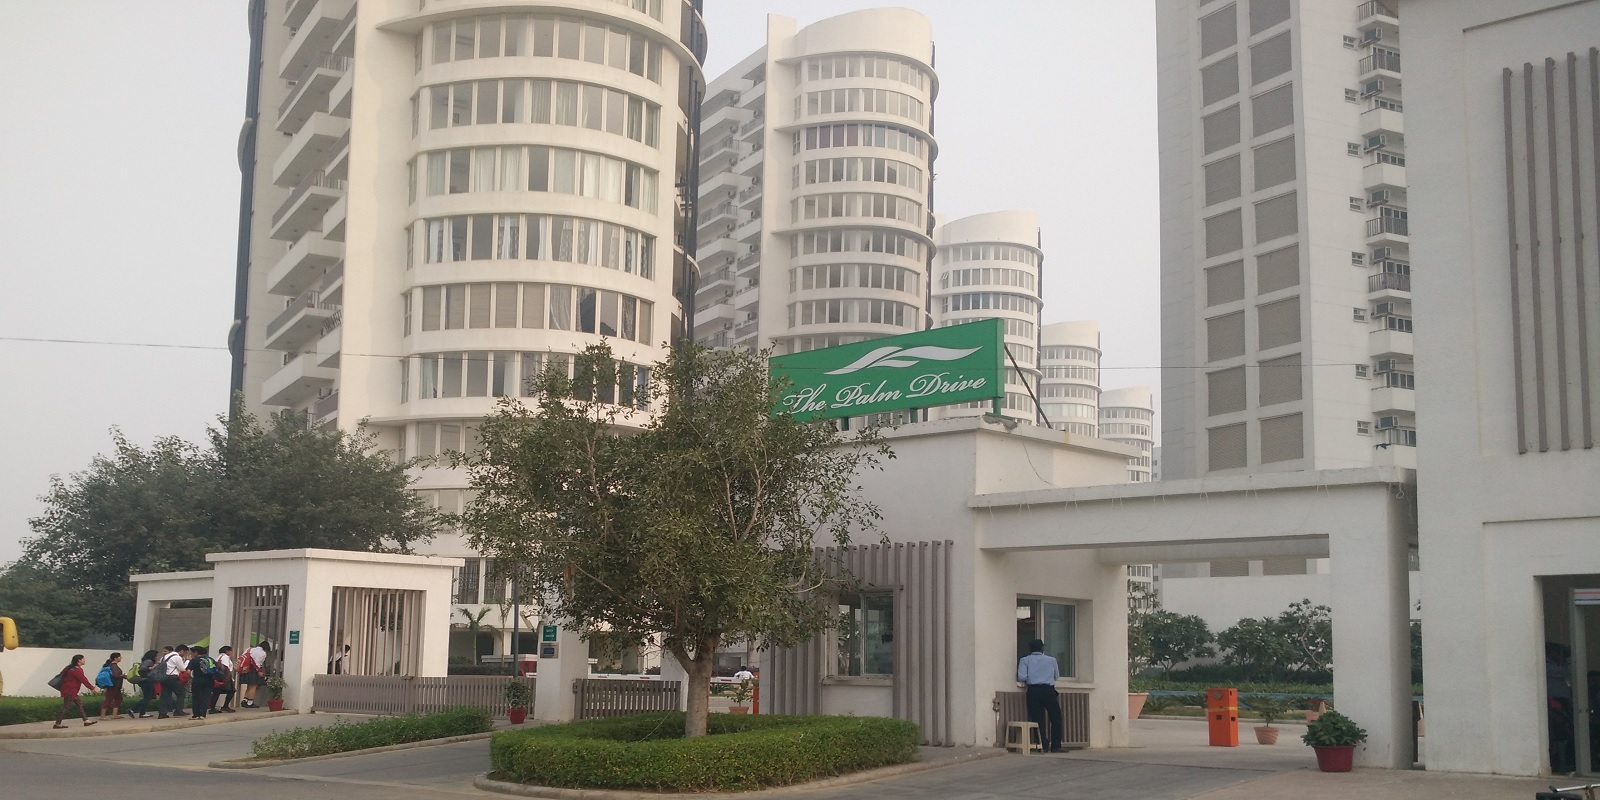 entrance-view-Picture-emaar-mgf-the-palm-drive-studios-3193023